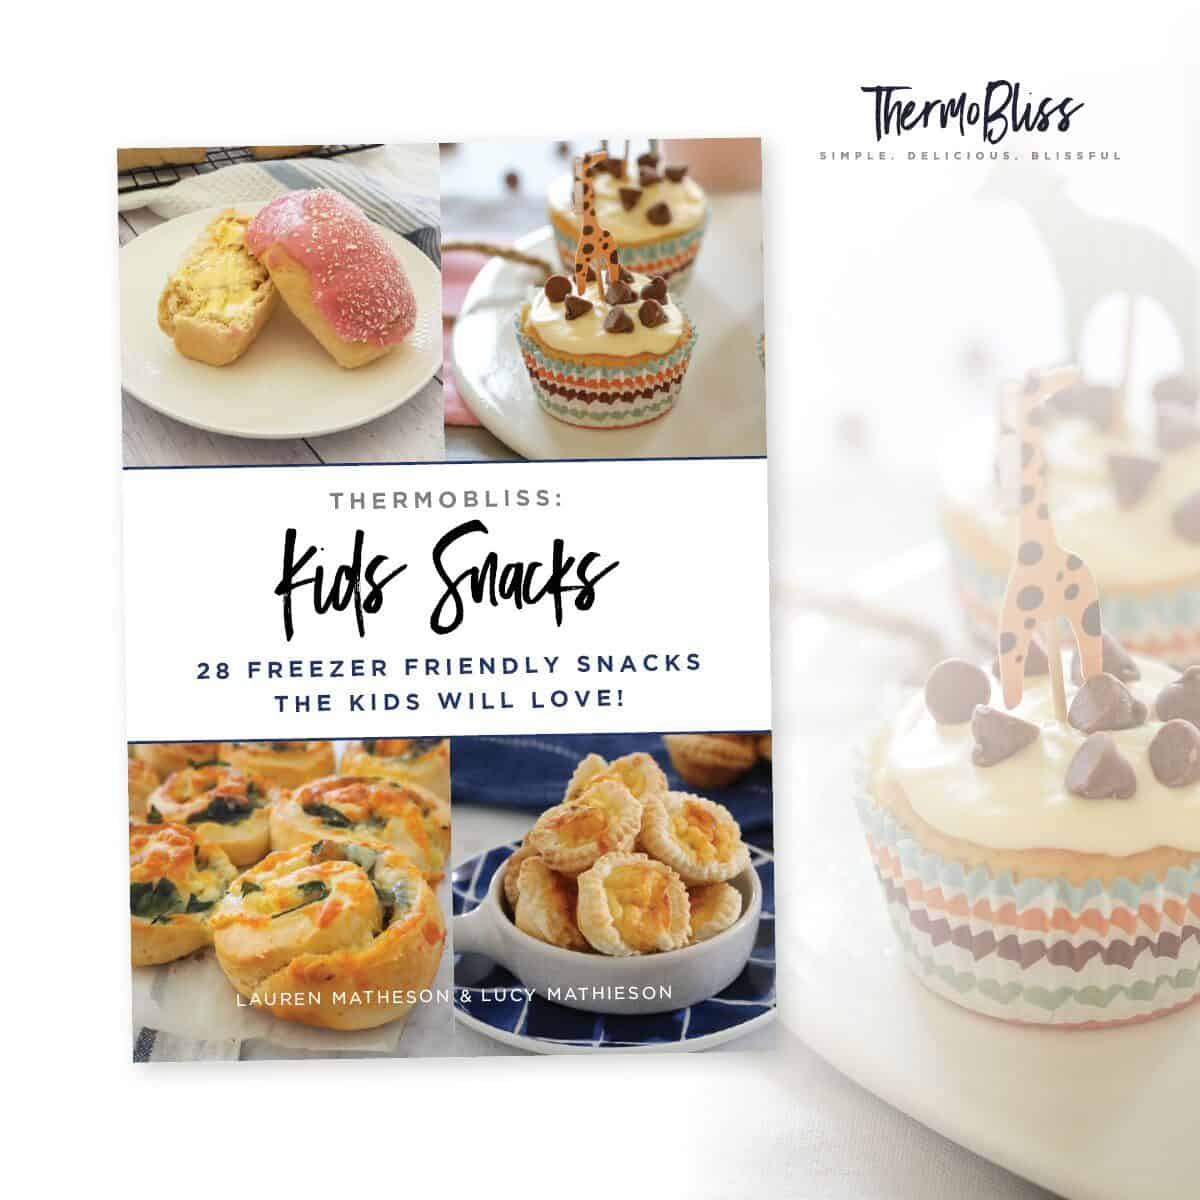 A ThermoBliss recipe book 'Kids Snacks'